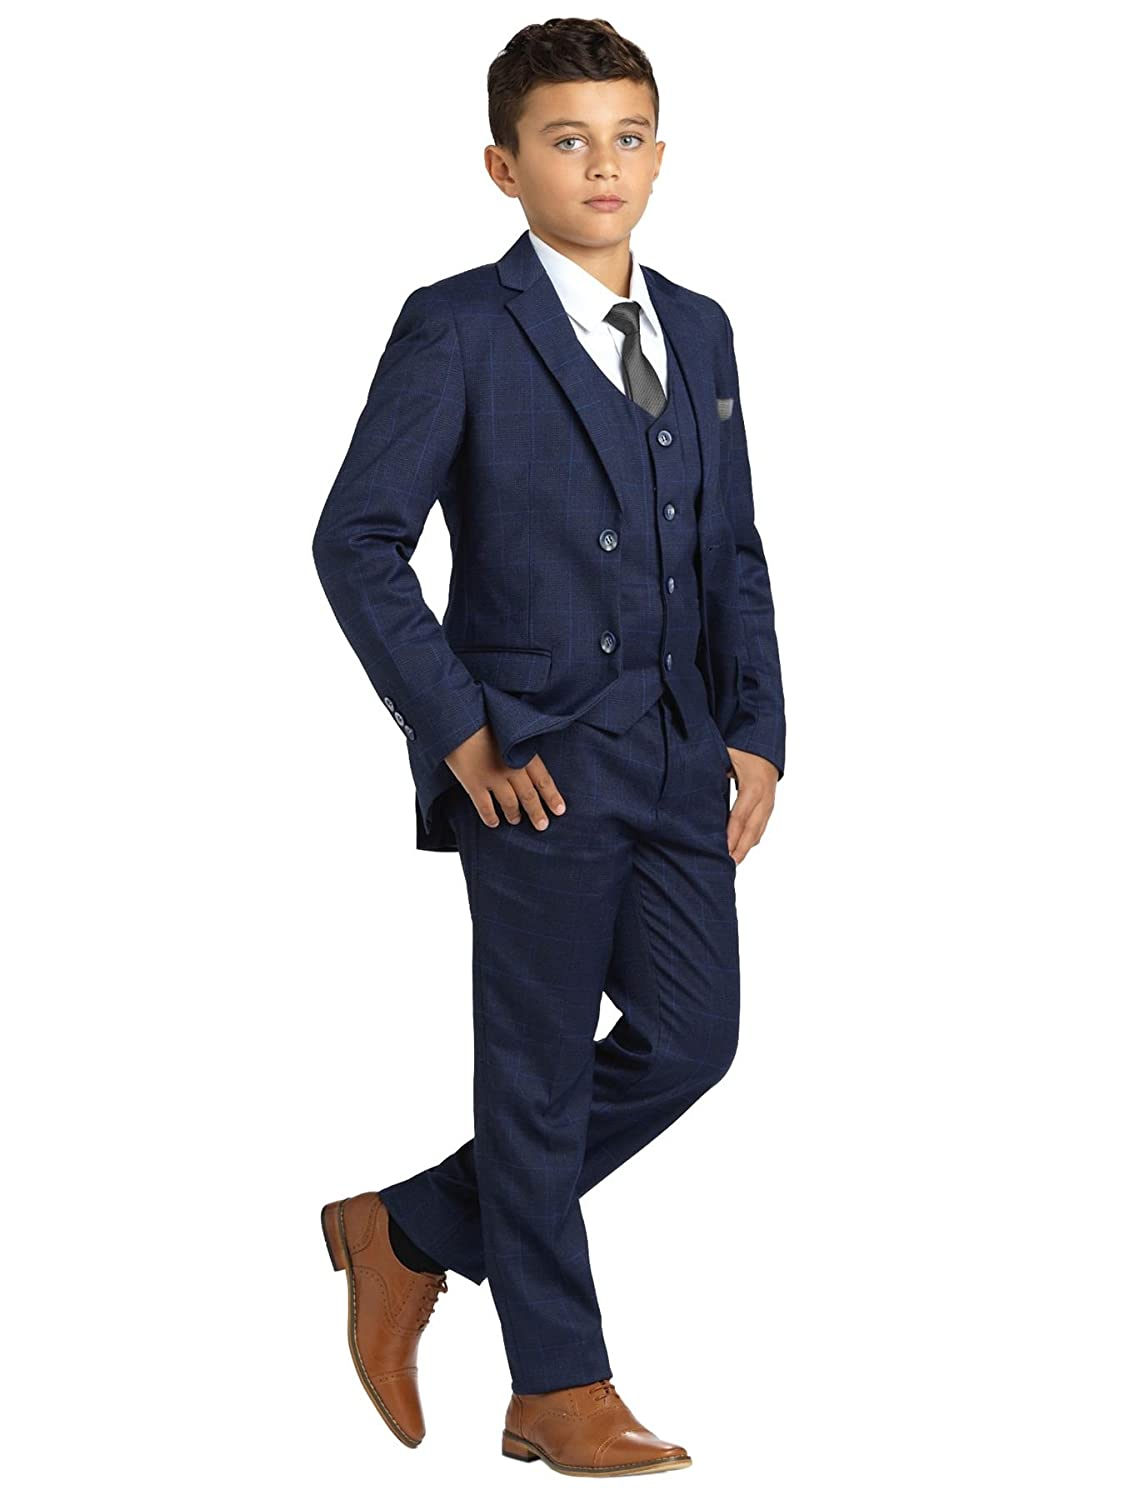 Paisley of London Boys Navy Suit, Boys Check Suit, Slim fit Suit, Page boy Suits, 1-14 Years